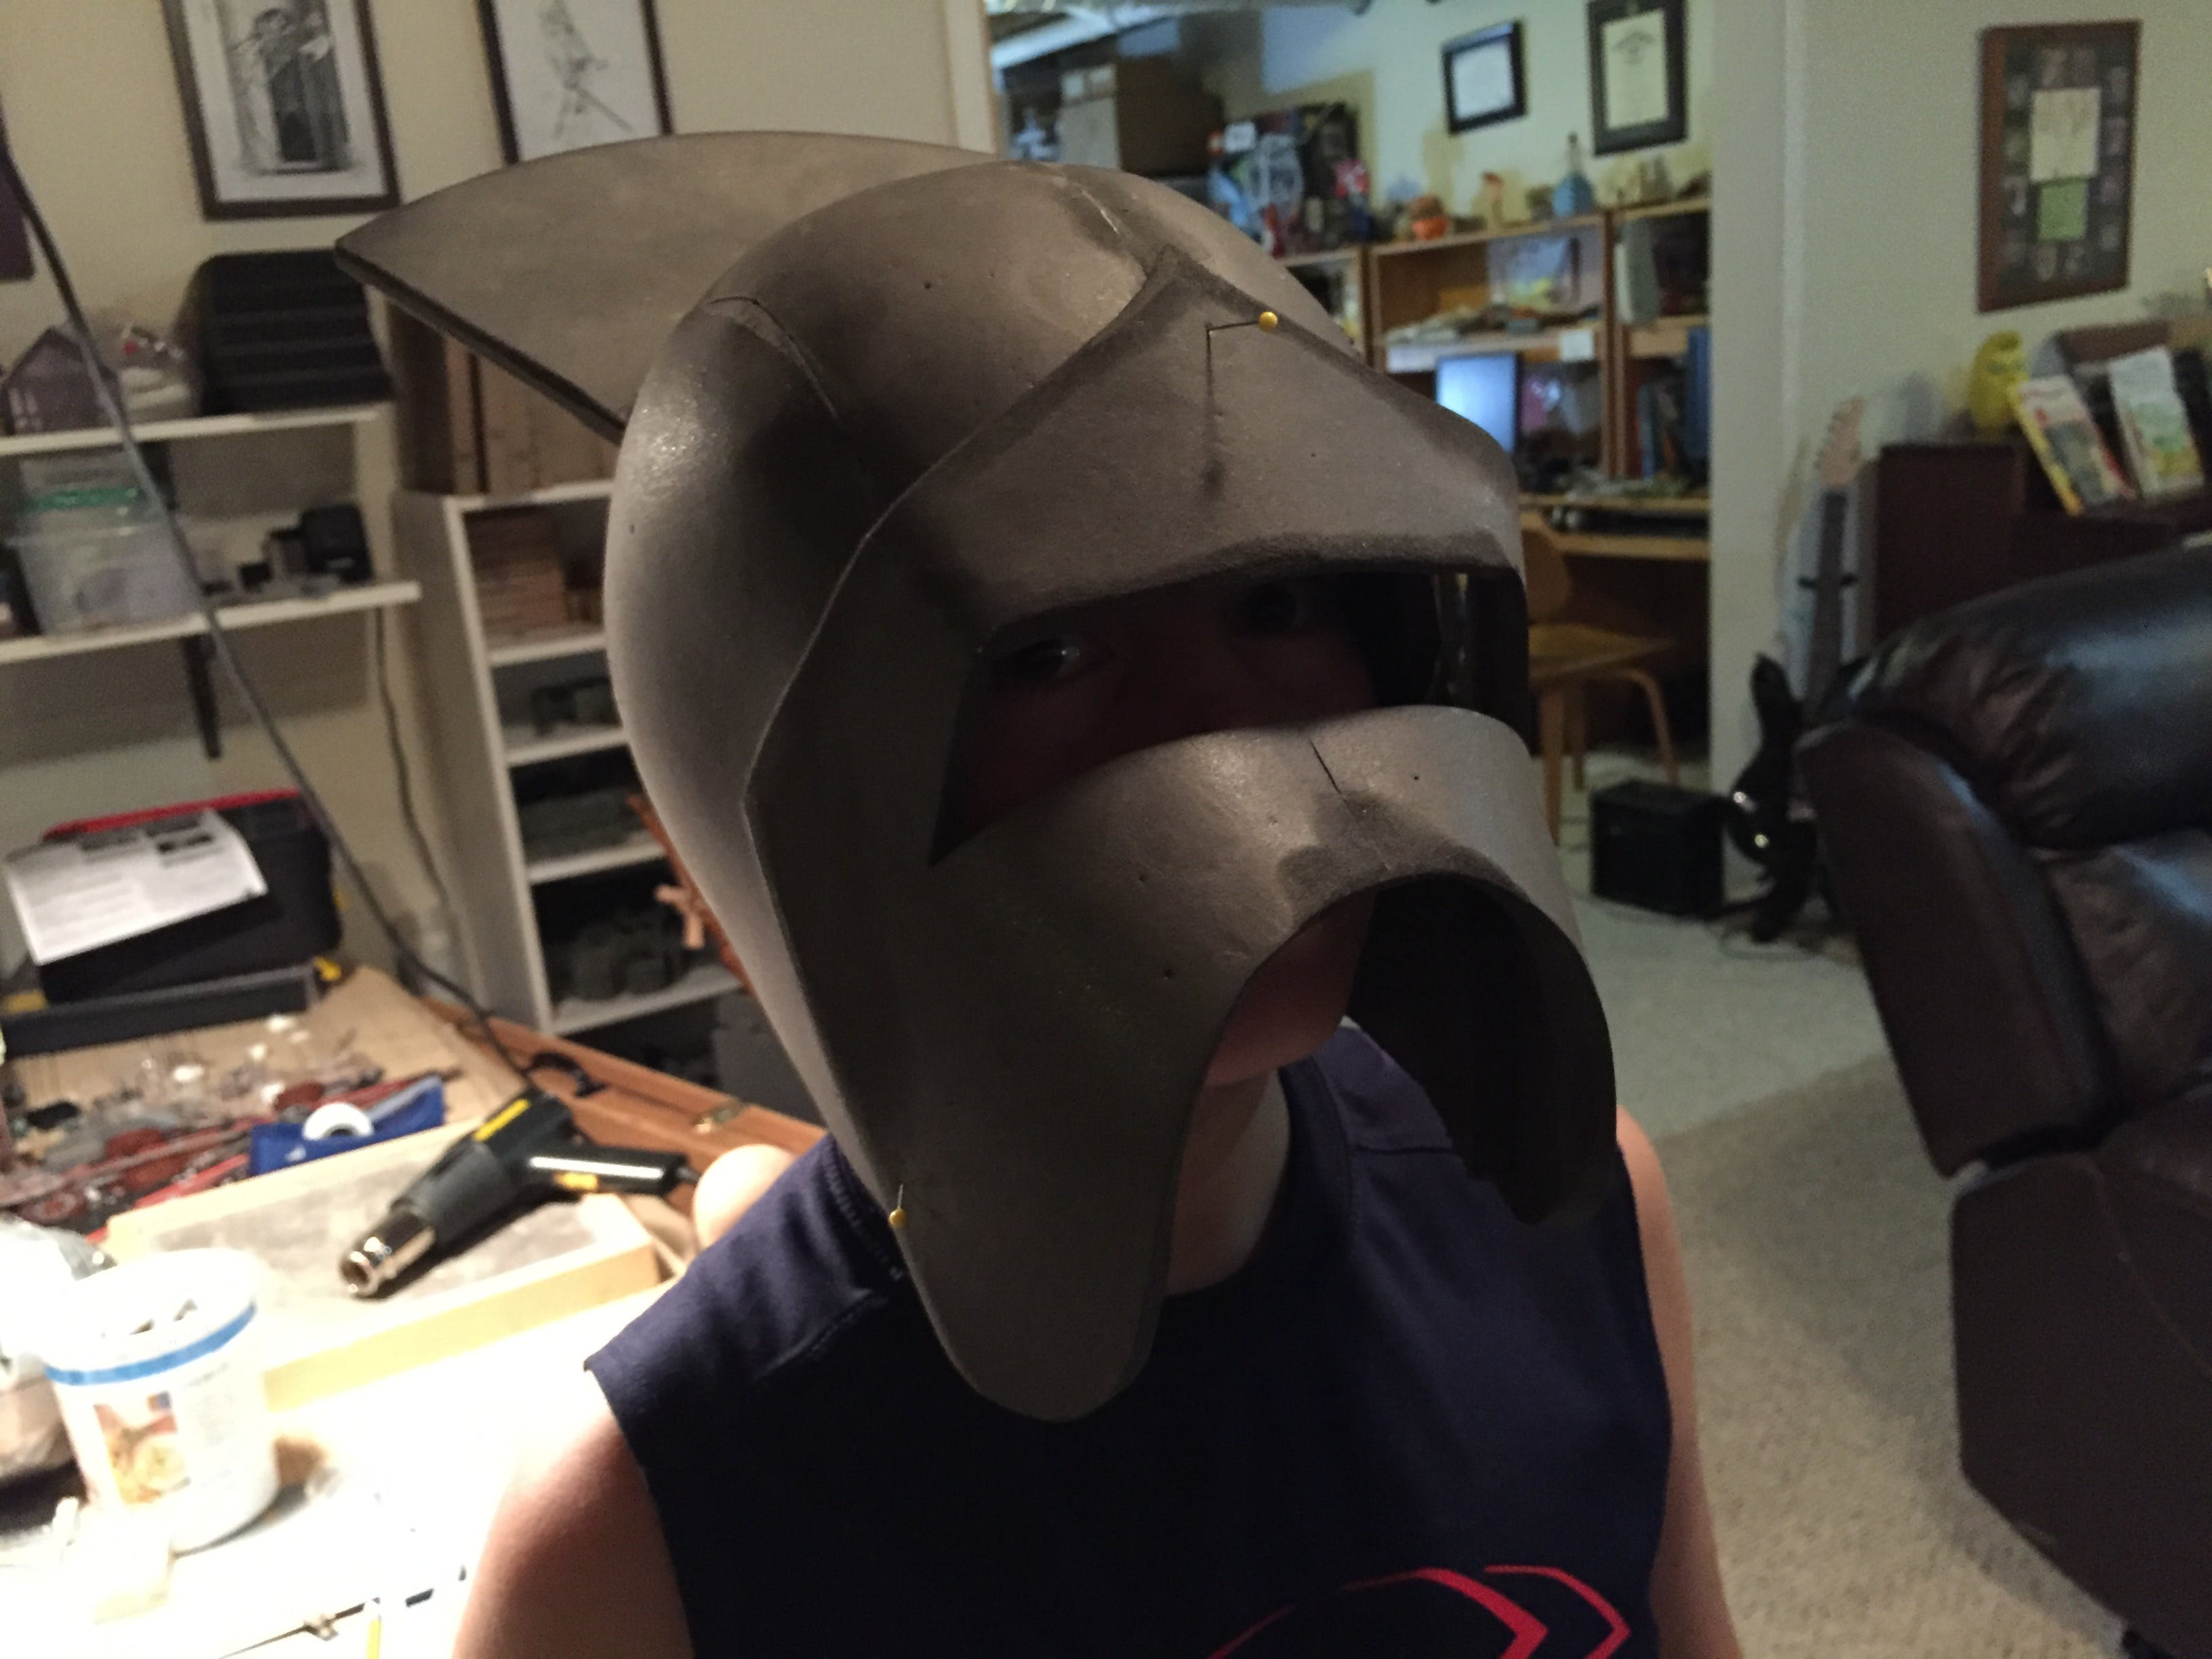 Test fitting the muzzle of the helmet. Be careful of the pins!